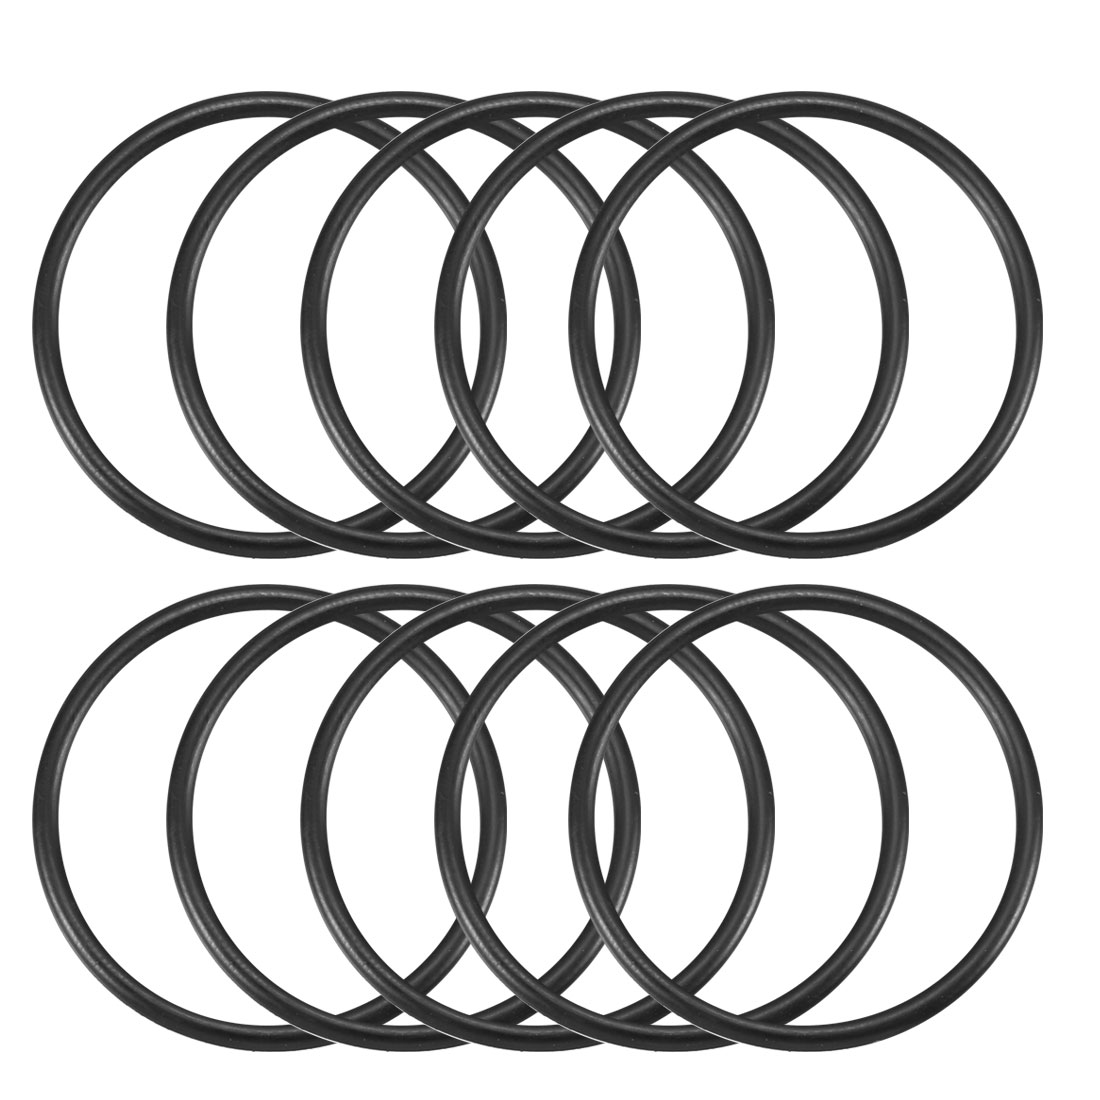 38mm x 33.2mm x 2.4mm Black Rubber O Ring Oil Seal Gasket 10 Pcs